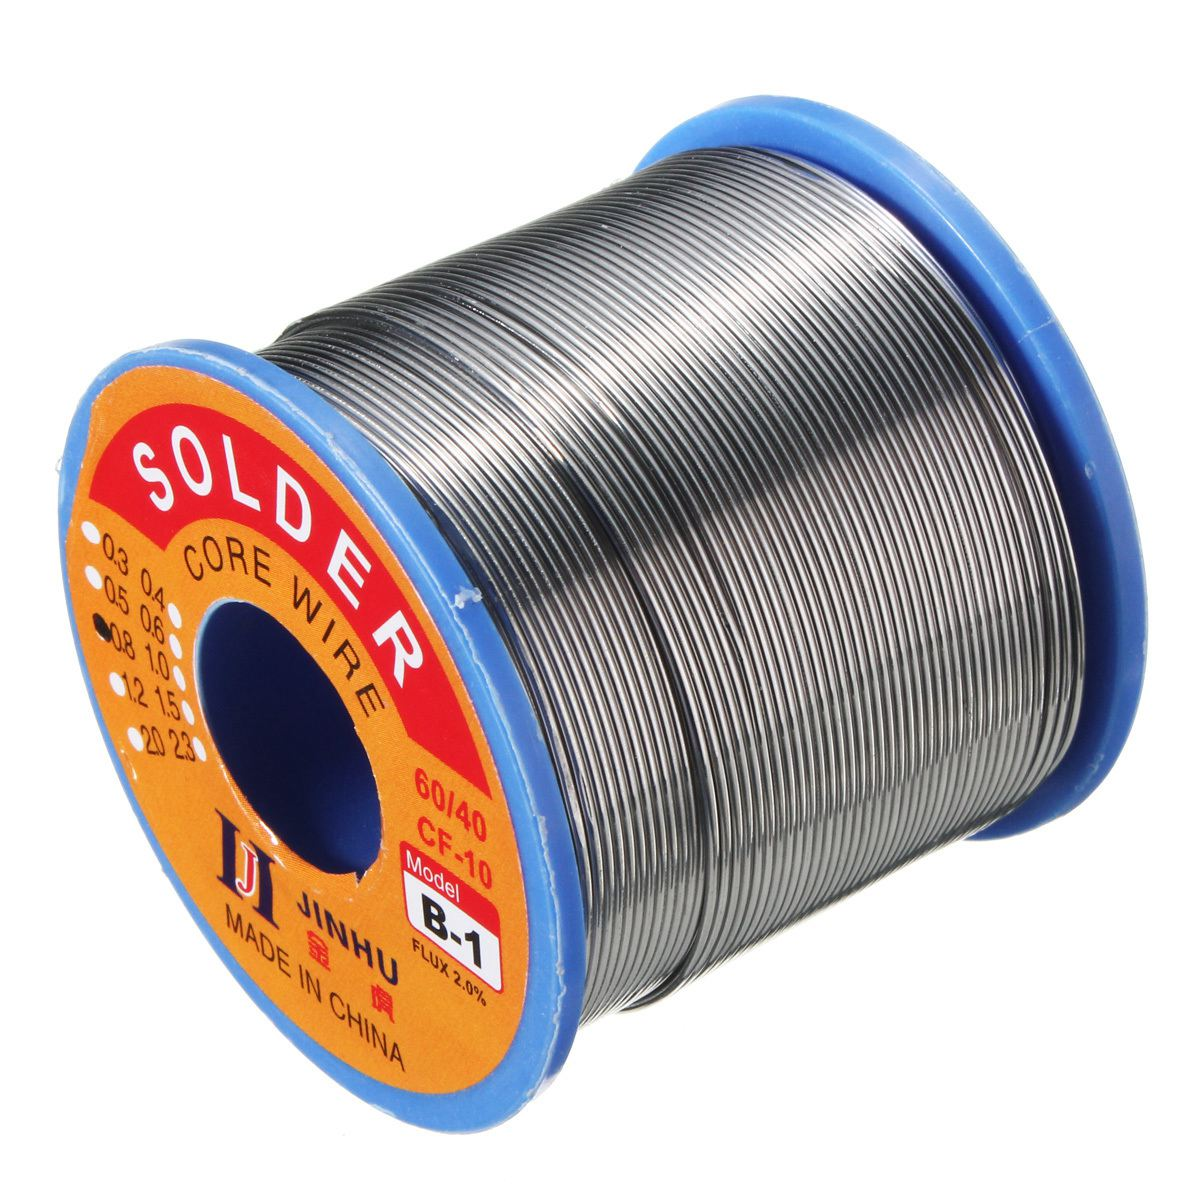 0.5/0.7/1MM 60/40 FLUX 2.0% 500g Tin Lead Solder Wire Melt Rosin Core Solder Soldering Wire Roll стоимость